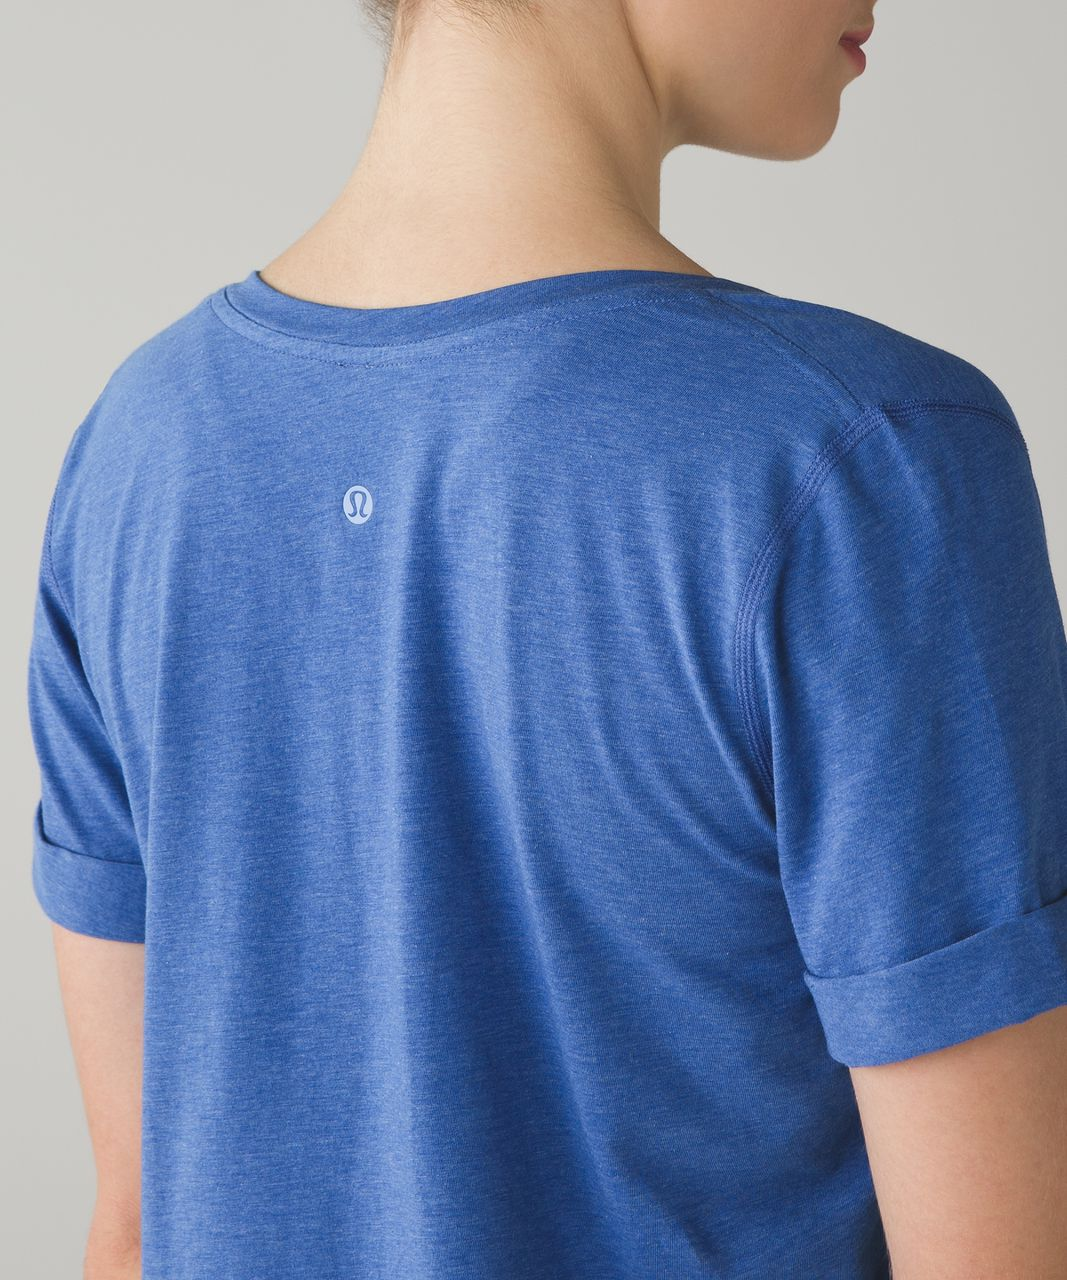 Lululemon Love Tee II - Heathered Sprinkler